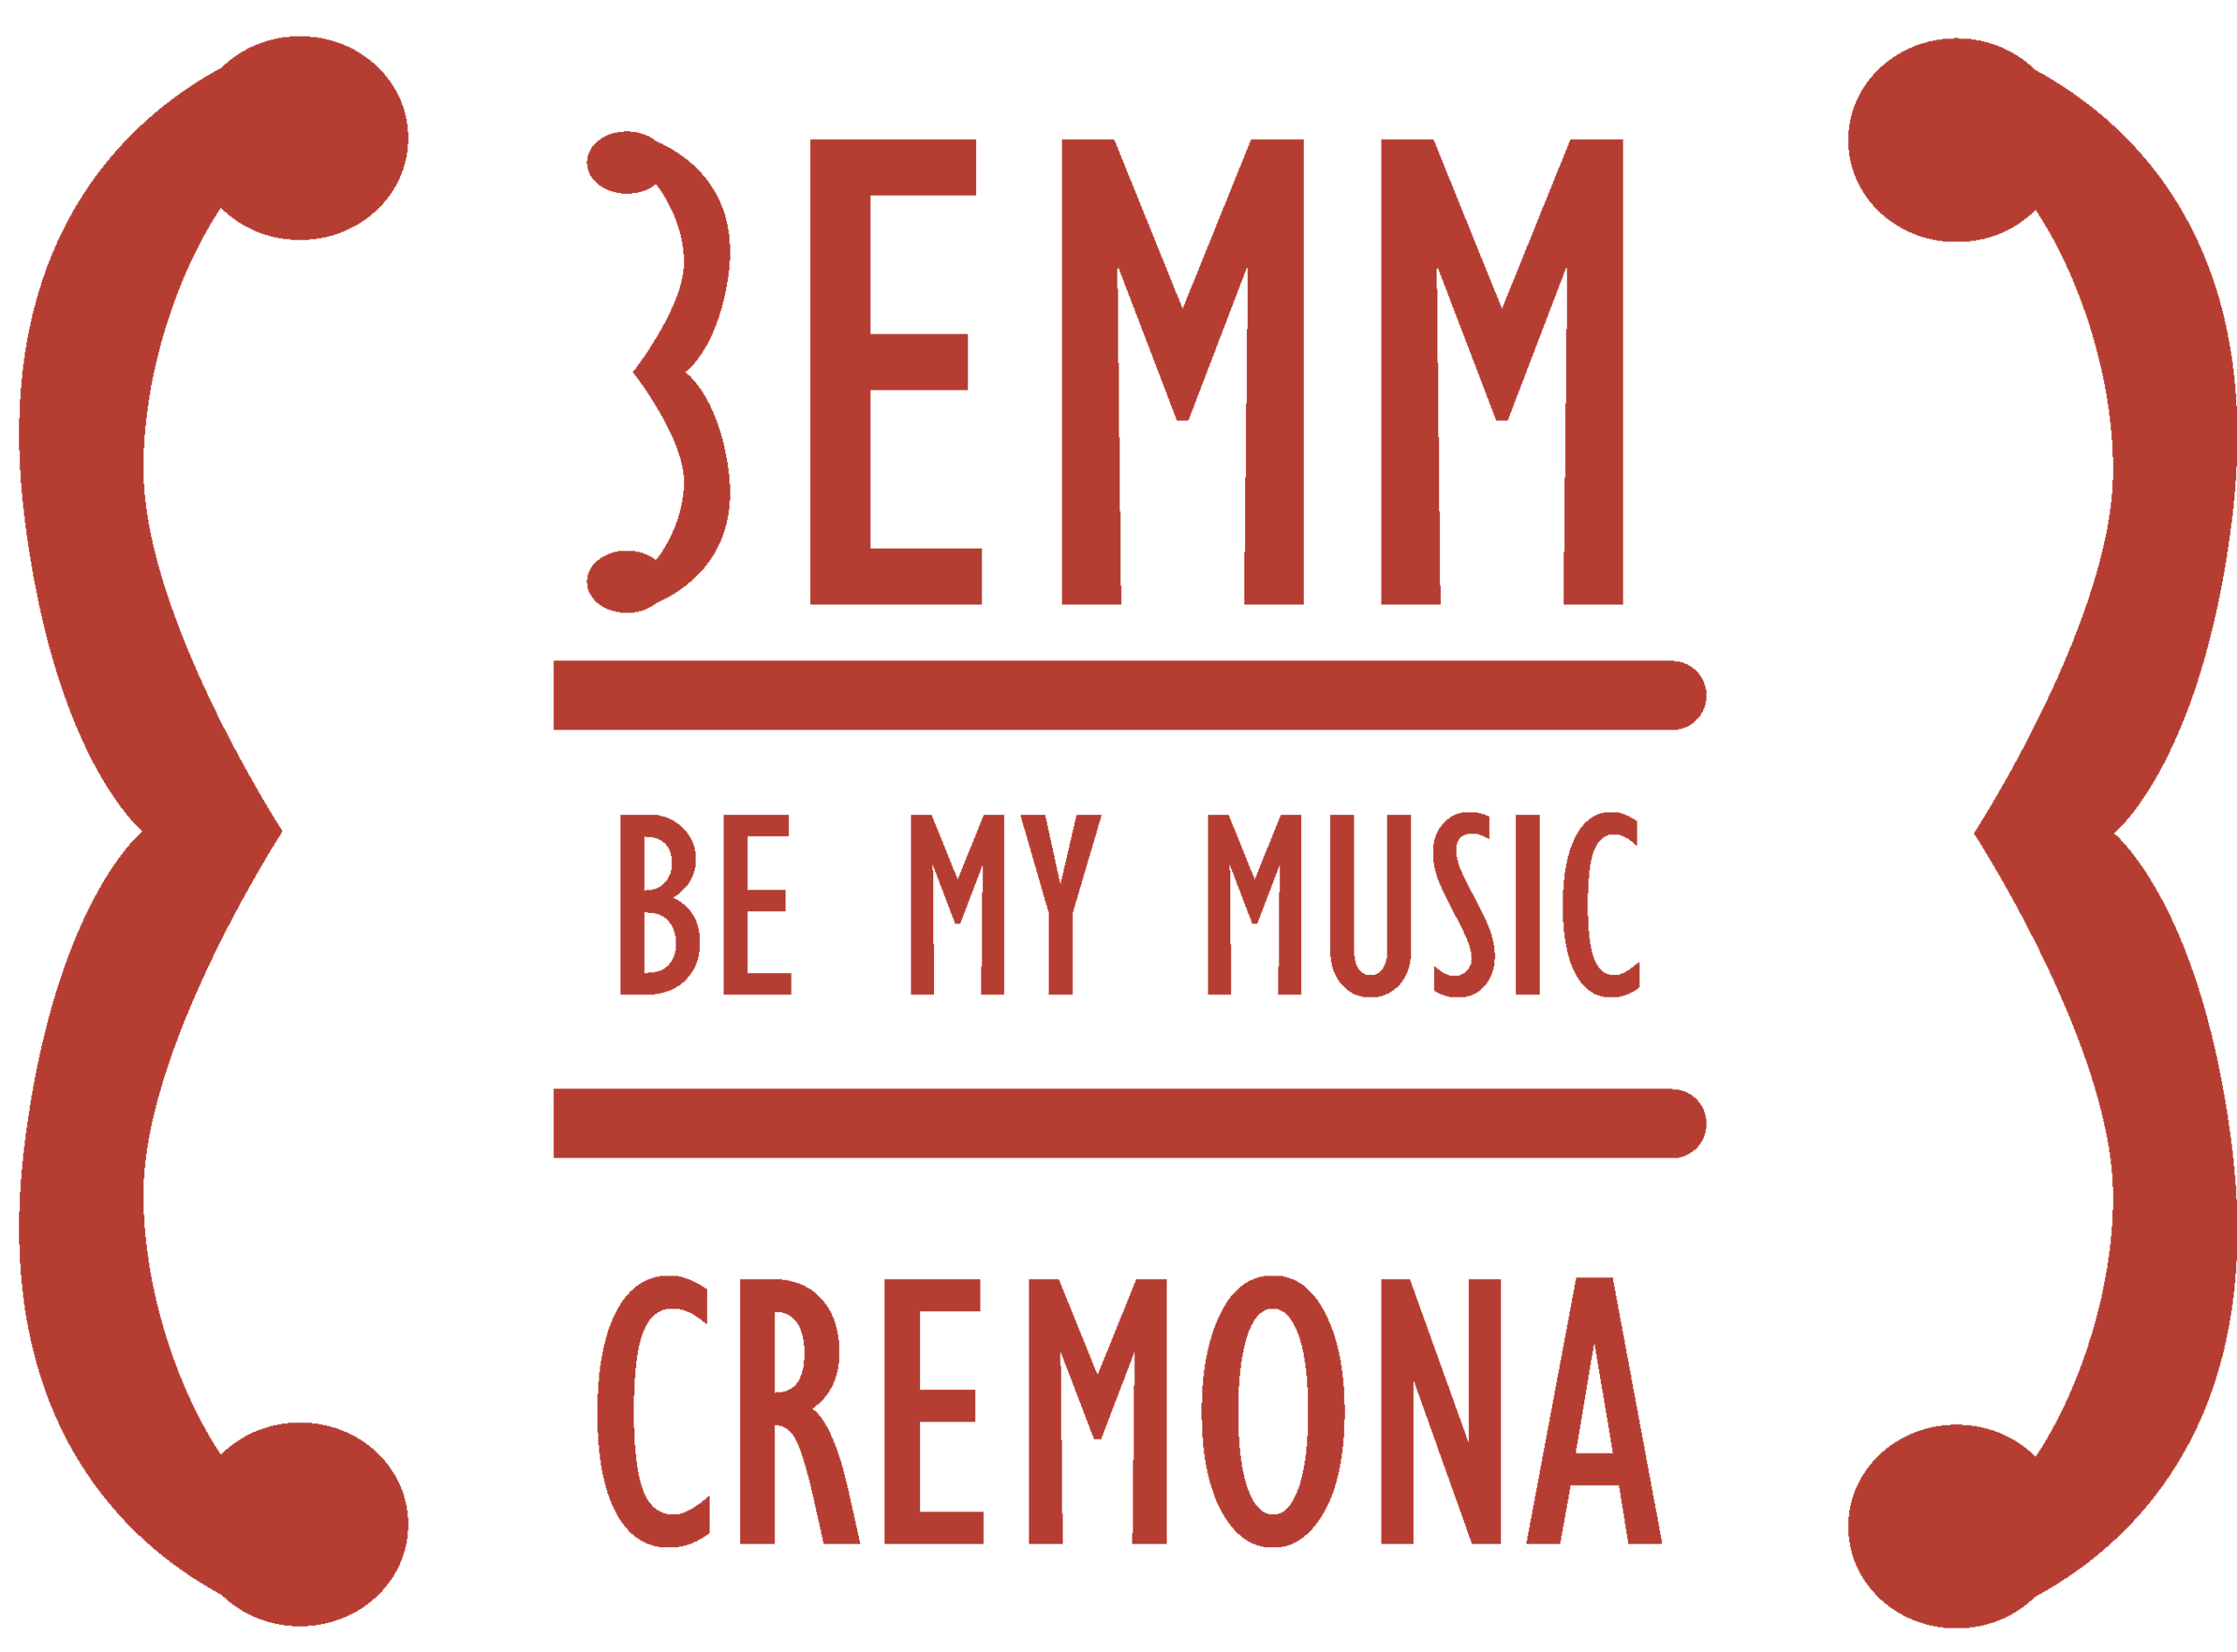 cropped-logo-BEMM-red-1.png